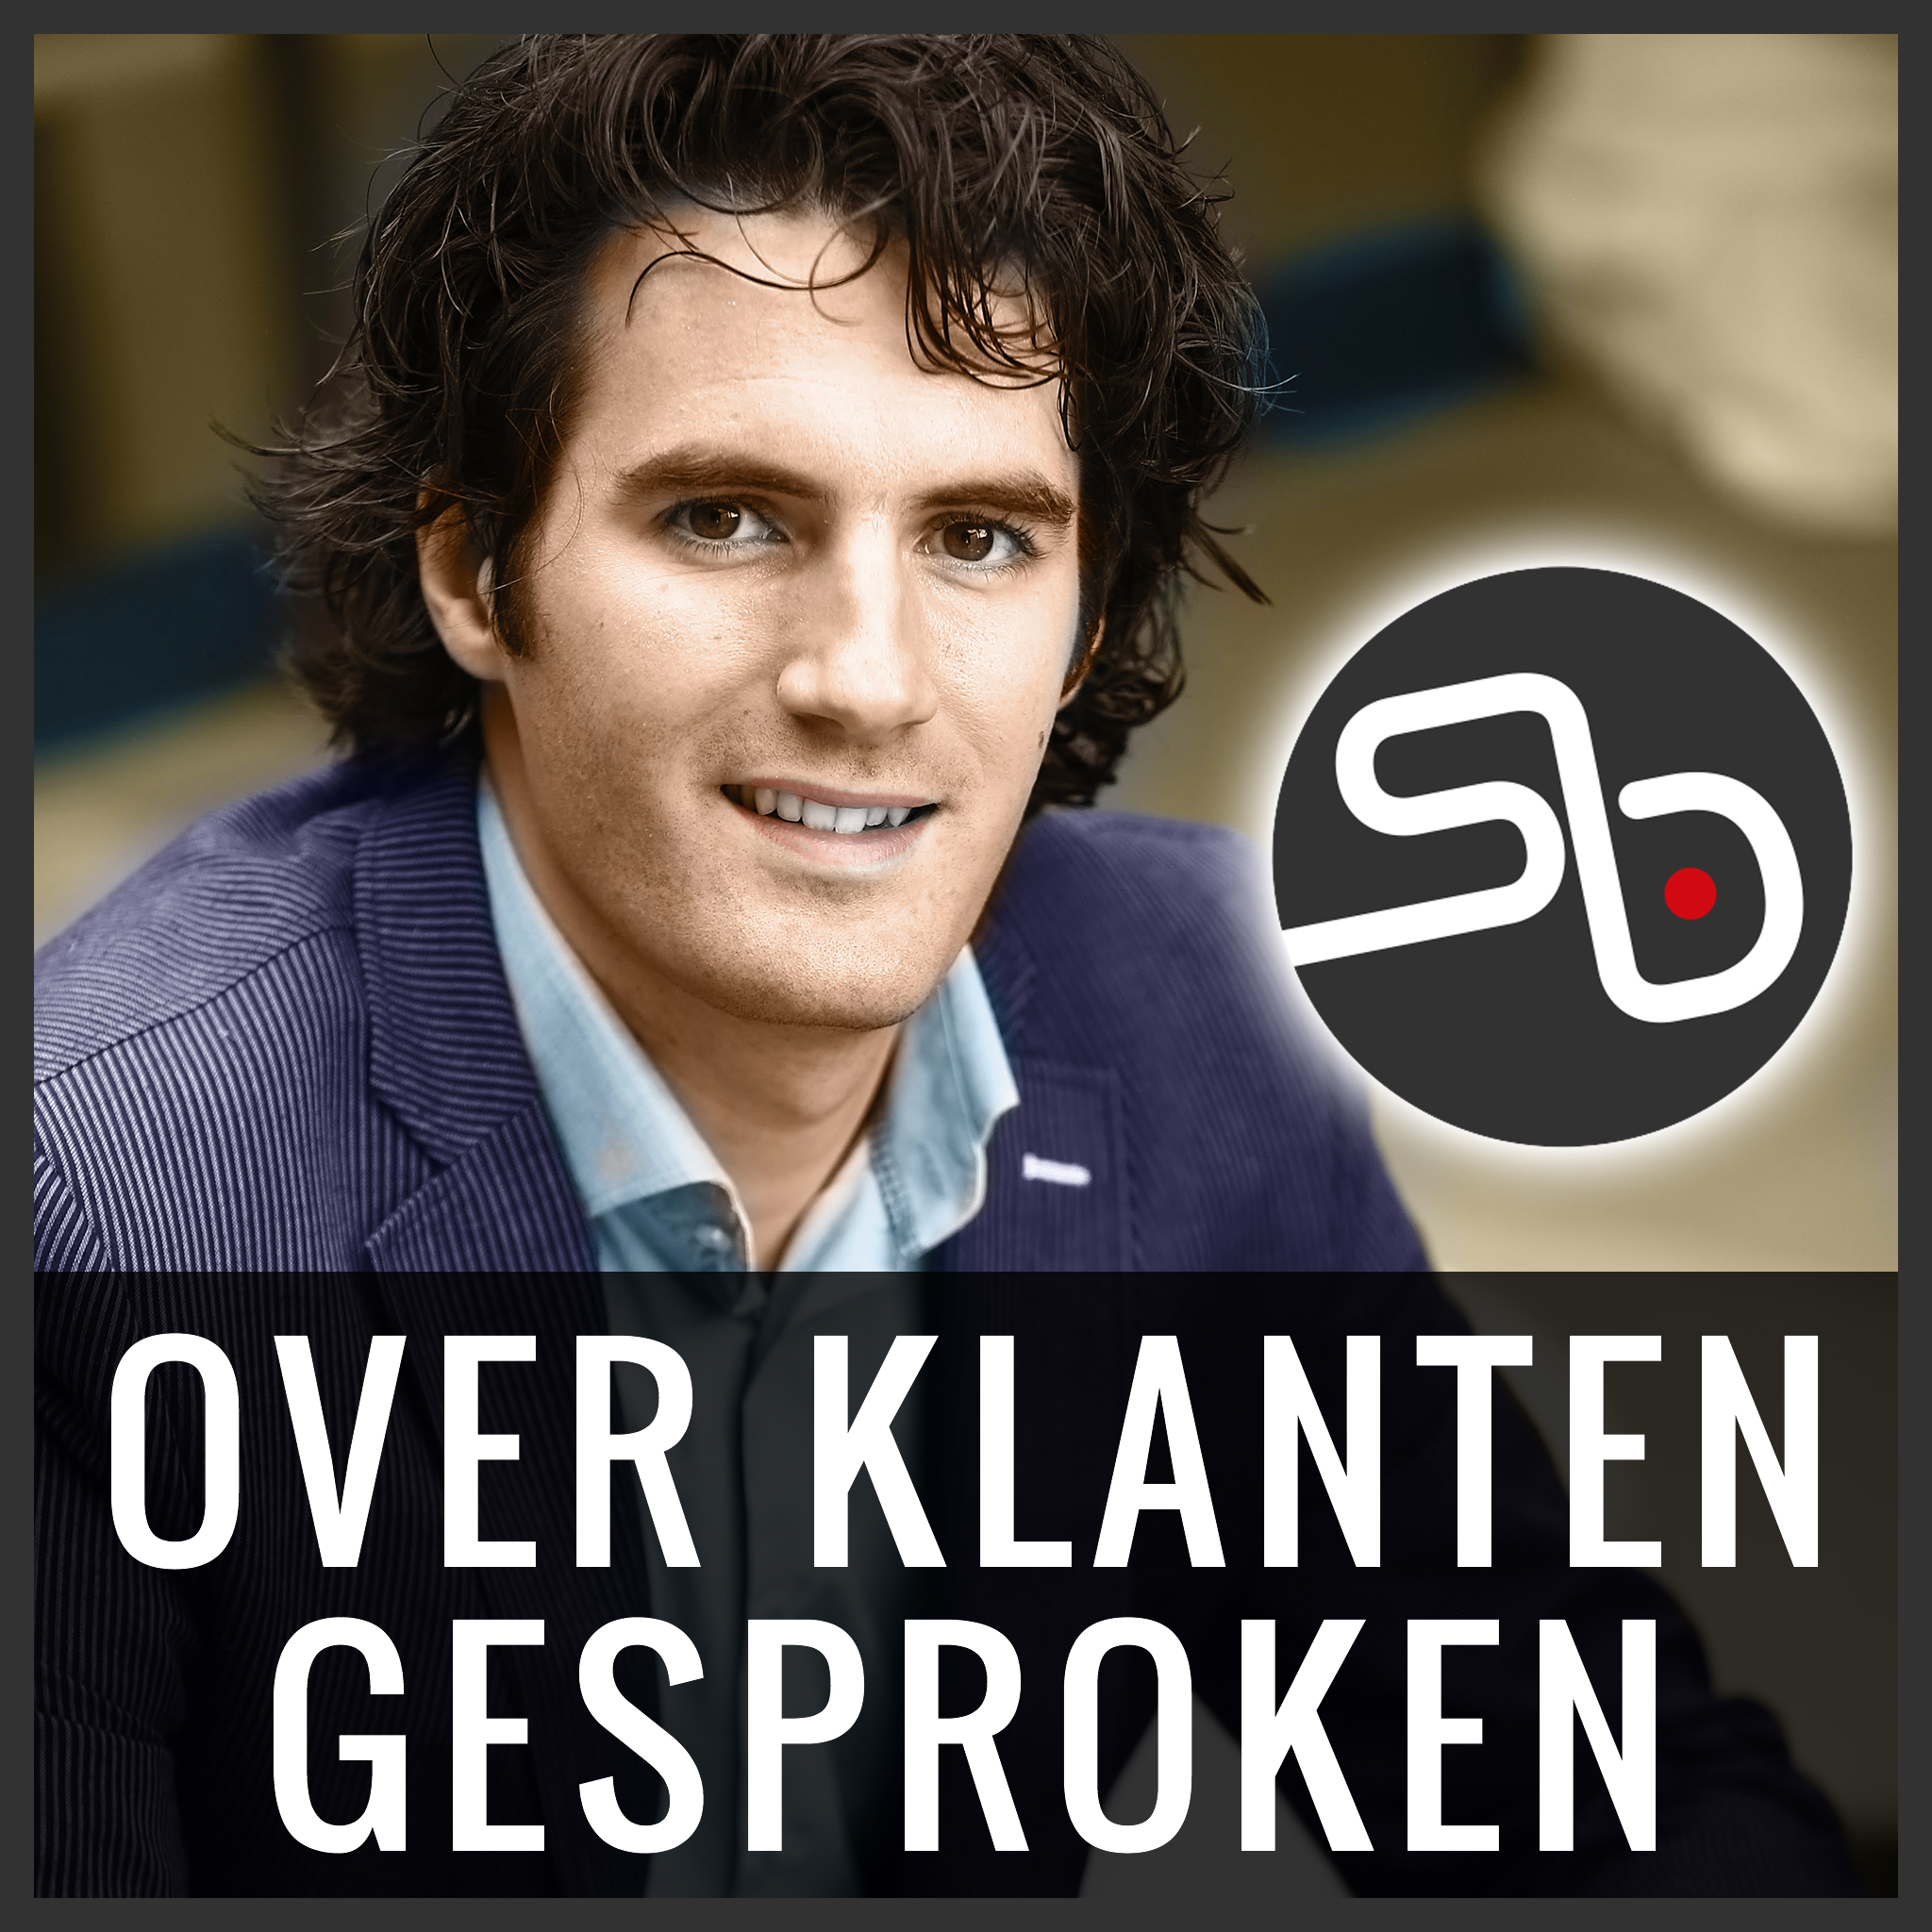 Over Klanten Gesproken - Gesprekken over klantbeleving | klantgerichtheid |customer experience | marketing